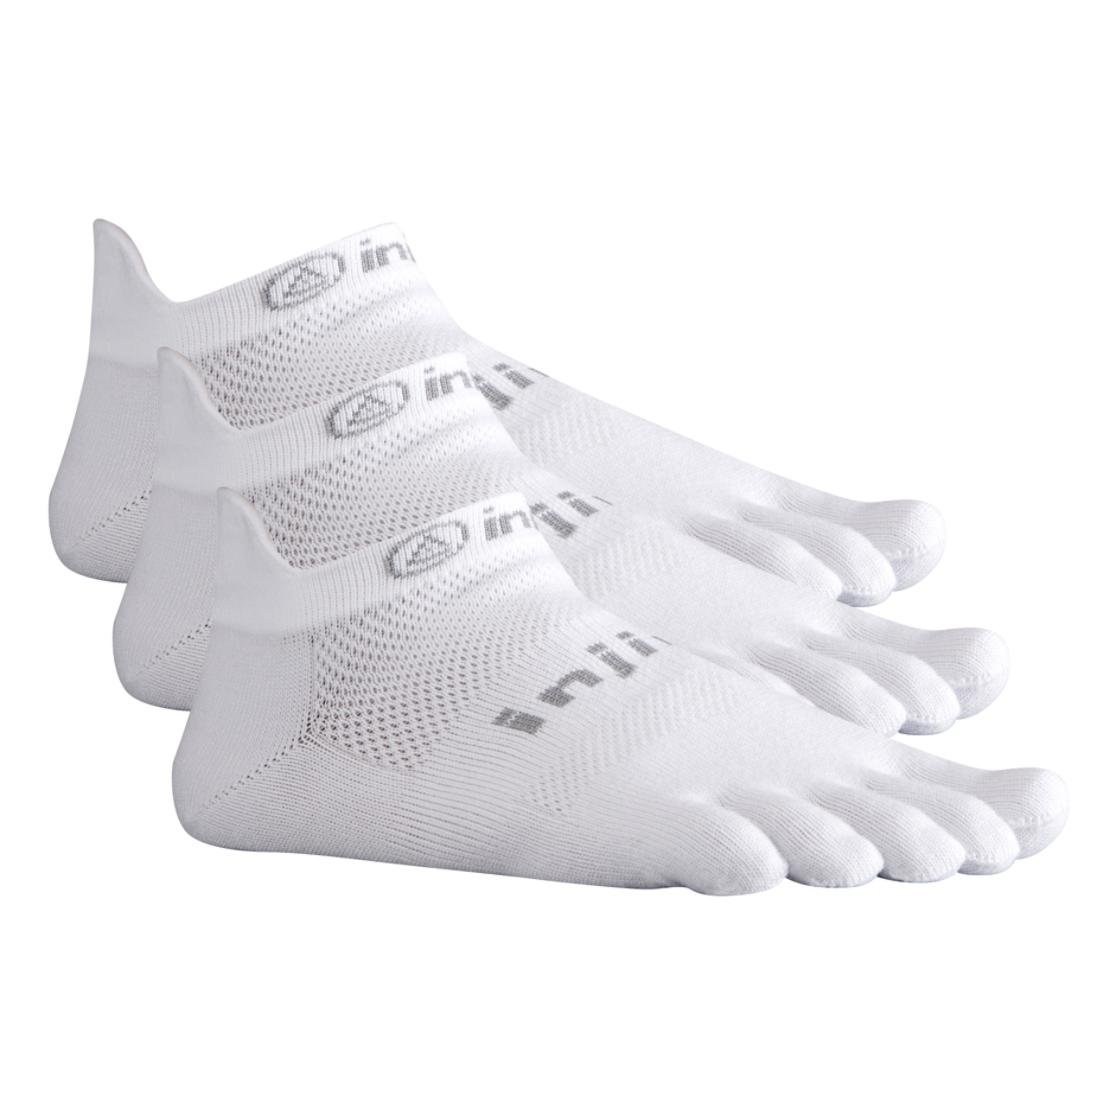 Injinji Run 2.0 Lightweight No Show Toe Socks 3 Pack (White, Large)